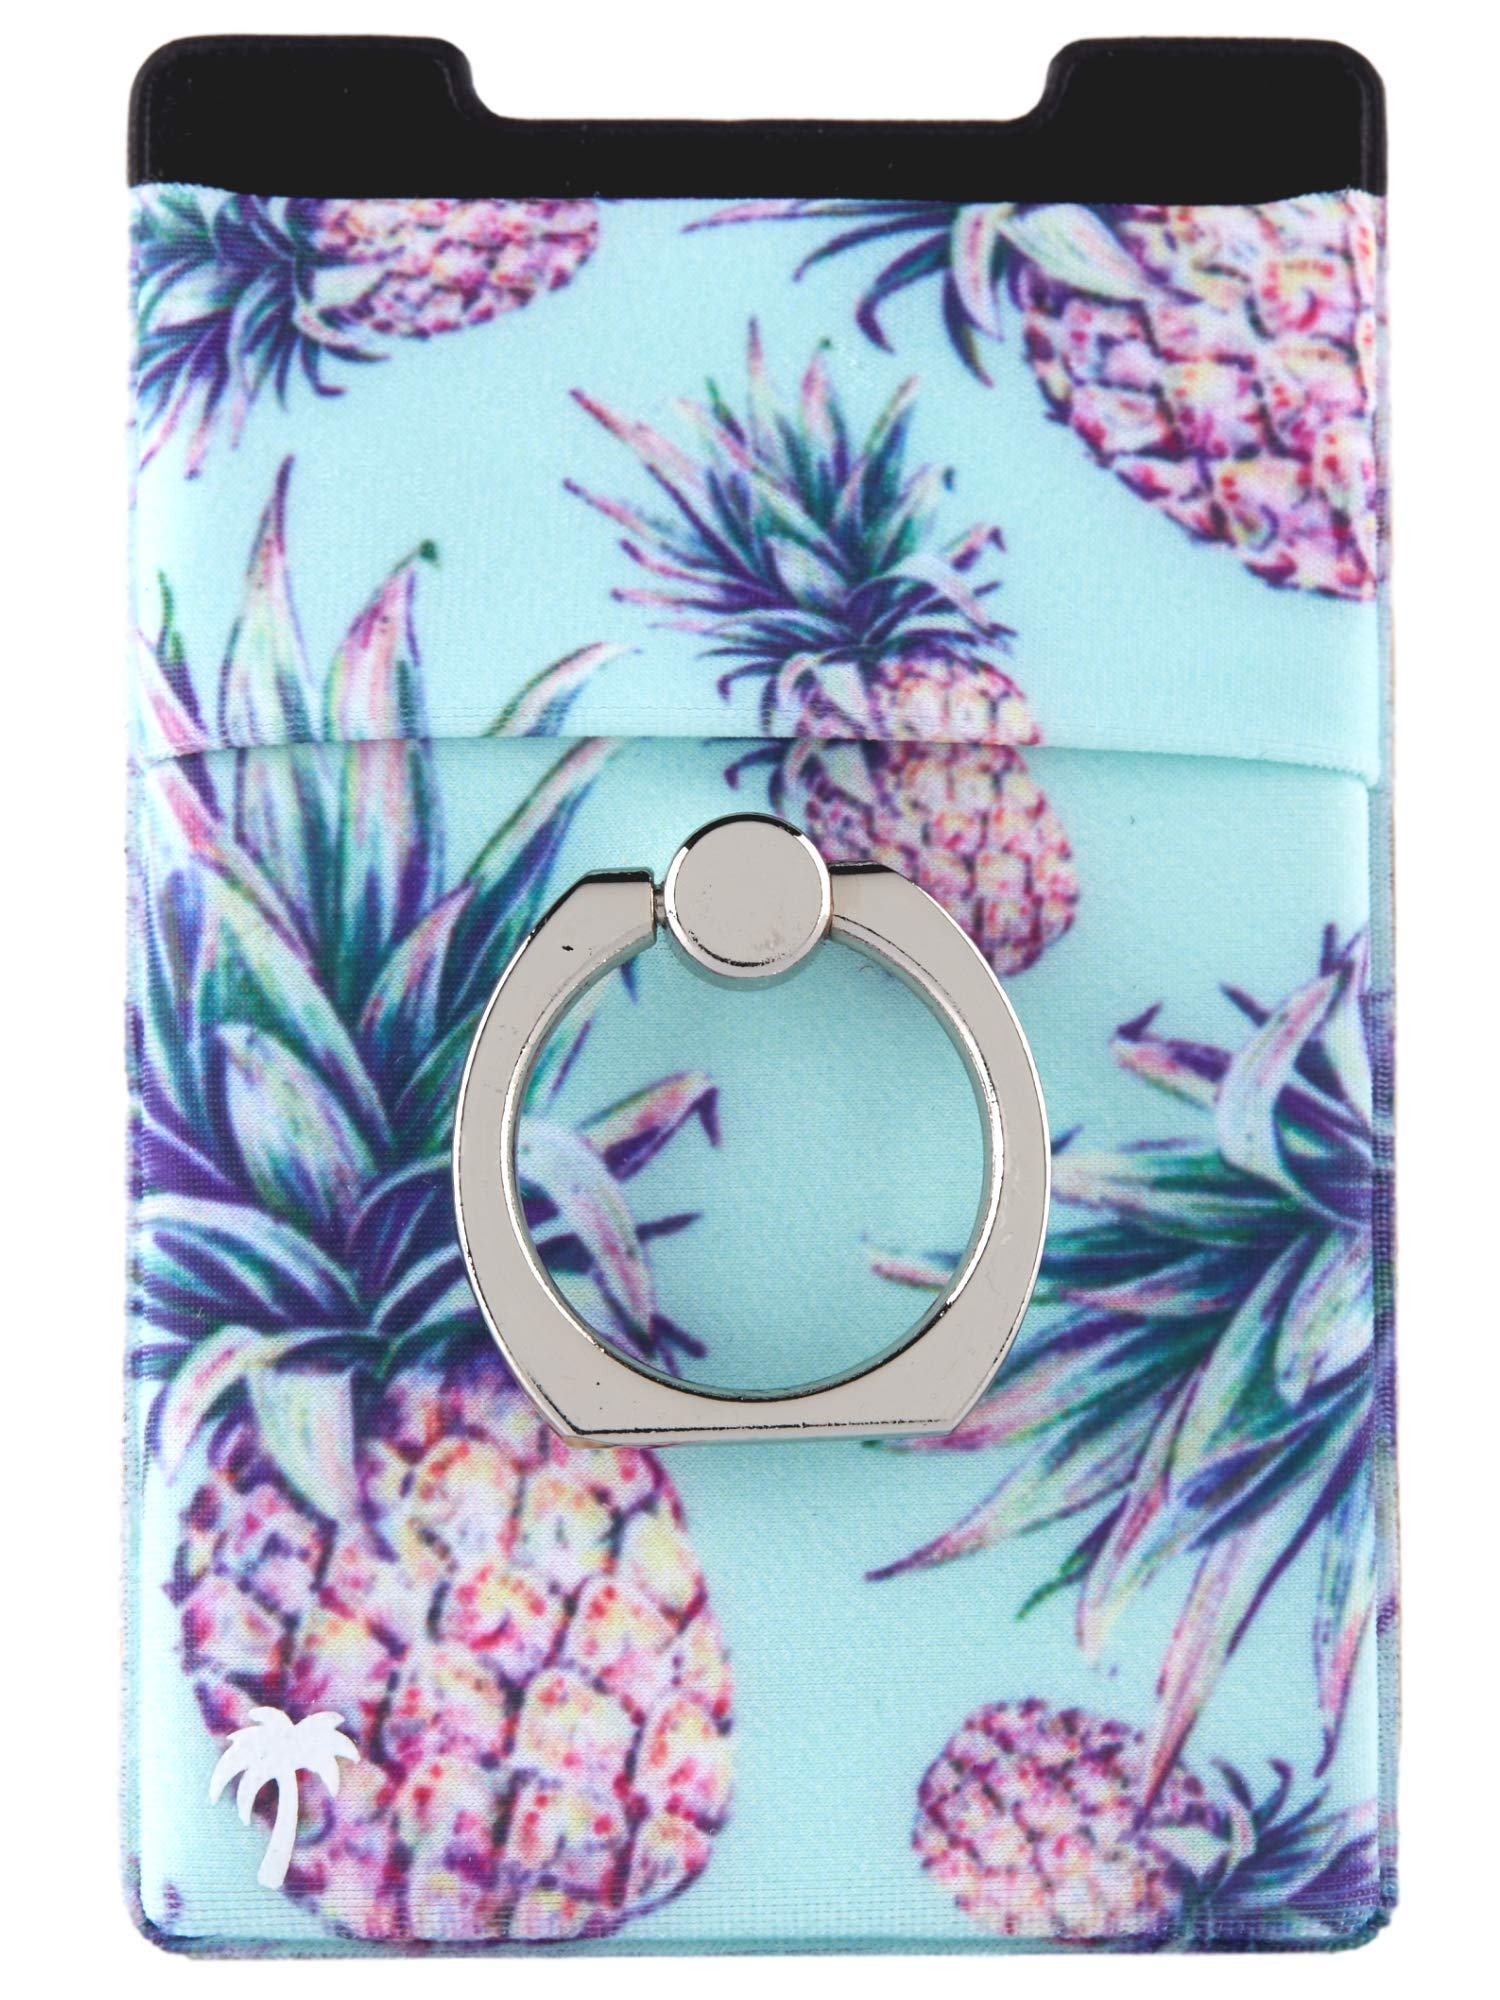 Lifestyle Designs The StickyWallet +Ring –New 4-in-1 Spandex Stick-on Wallet w/Kickstand Finger Ring – Best Card Holder Sticker for Any Phone: iPhone 11 Pro Max XR XS X etc. (Green Pineapple)